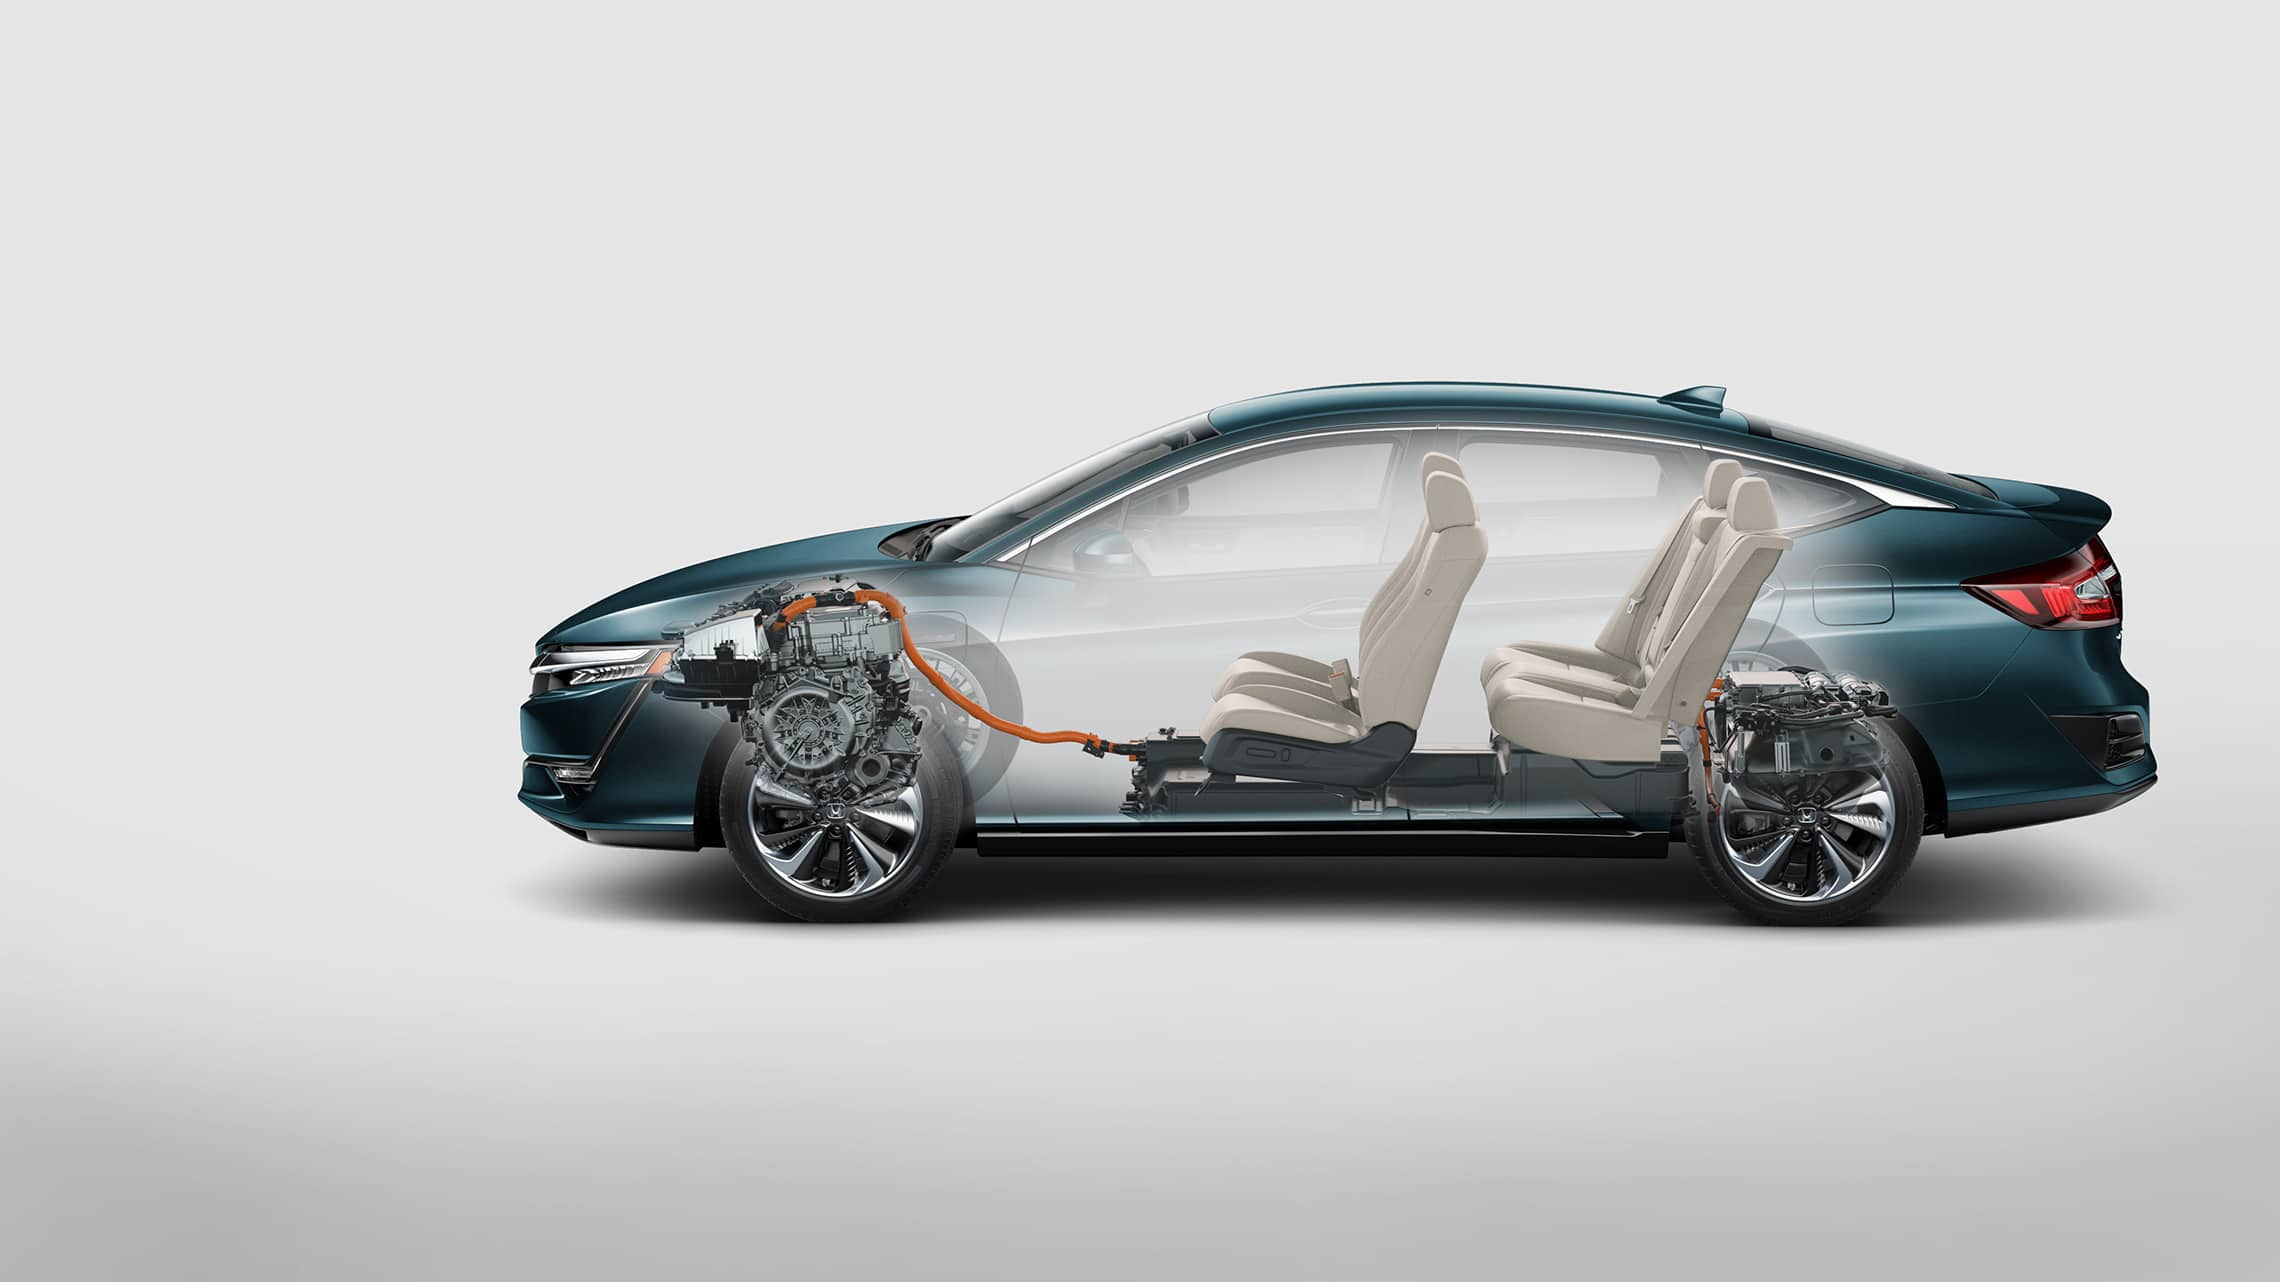 Side profile of 2020 Clarity Plug-In Hybrid with interior shown.